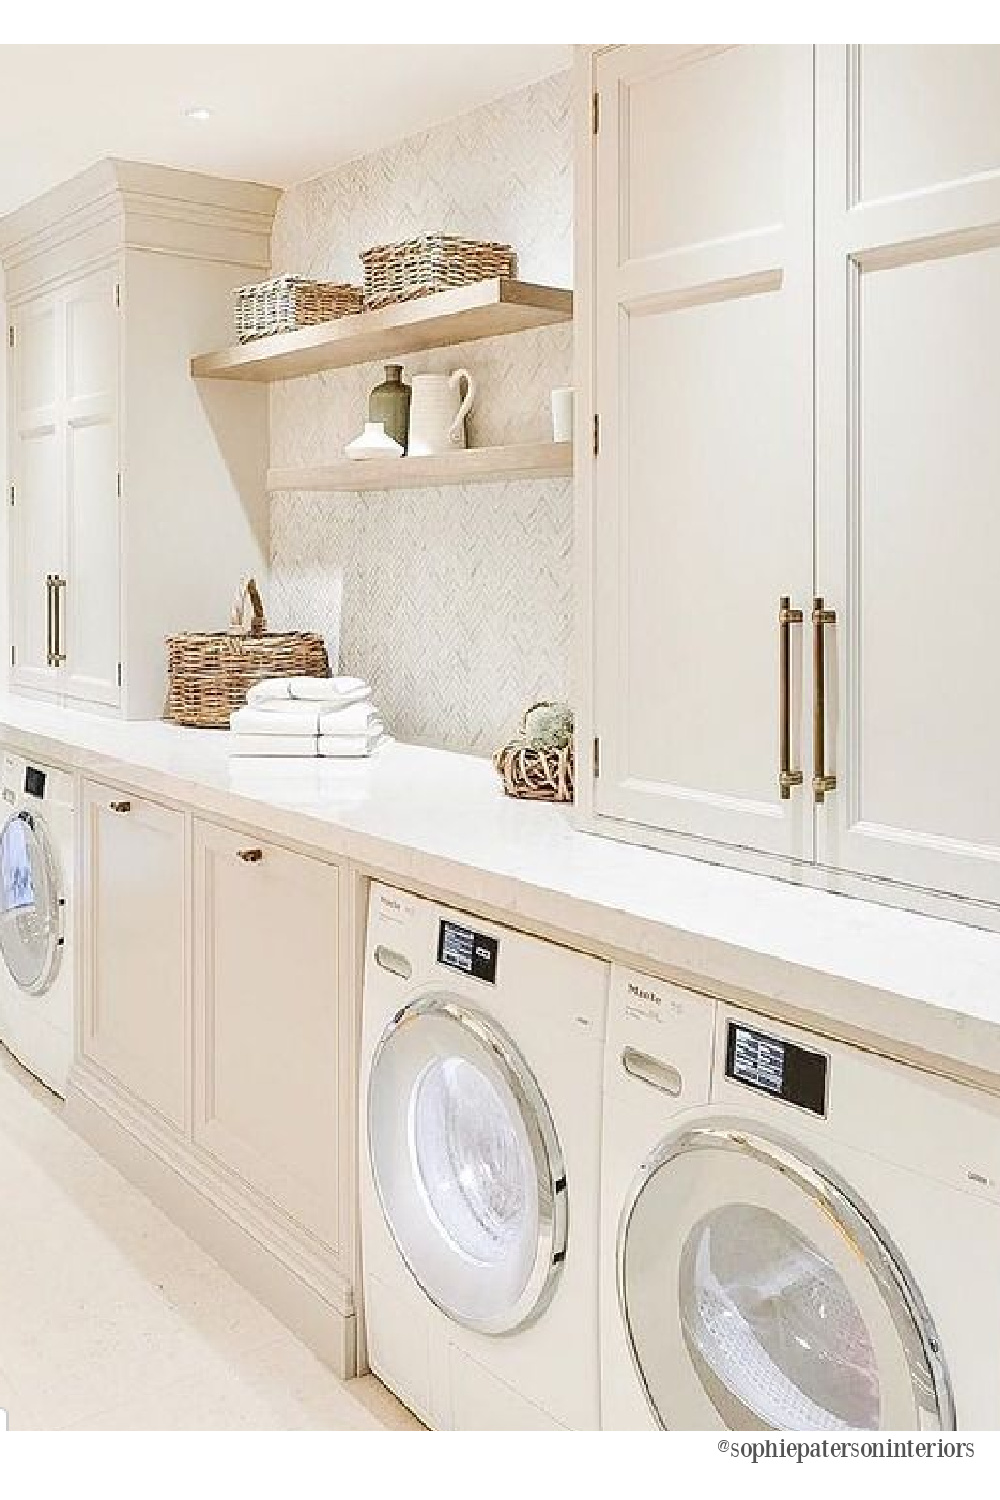 Lovely tone on tone timeless sophisticated laundry room by Sophie Paterson Interiors. #sophisticateddecor #laundryrooms